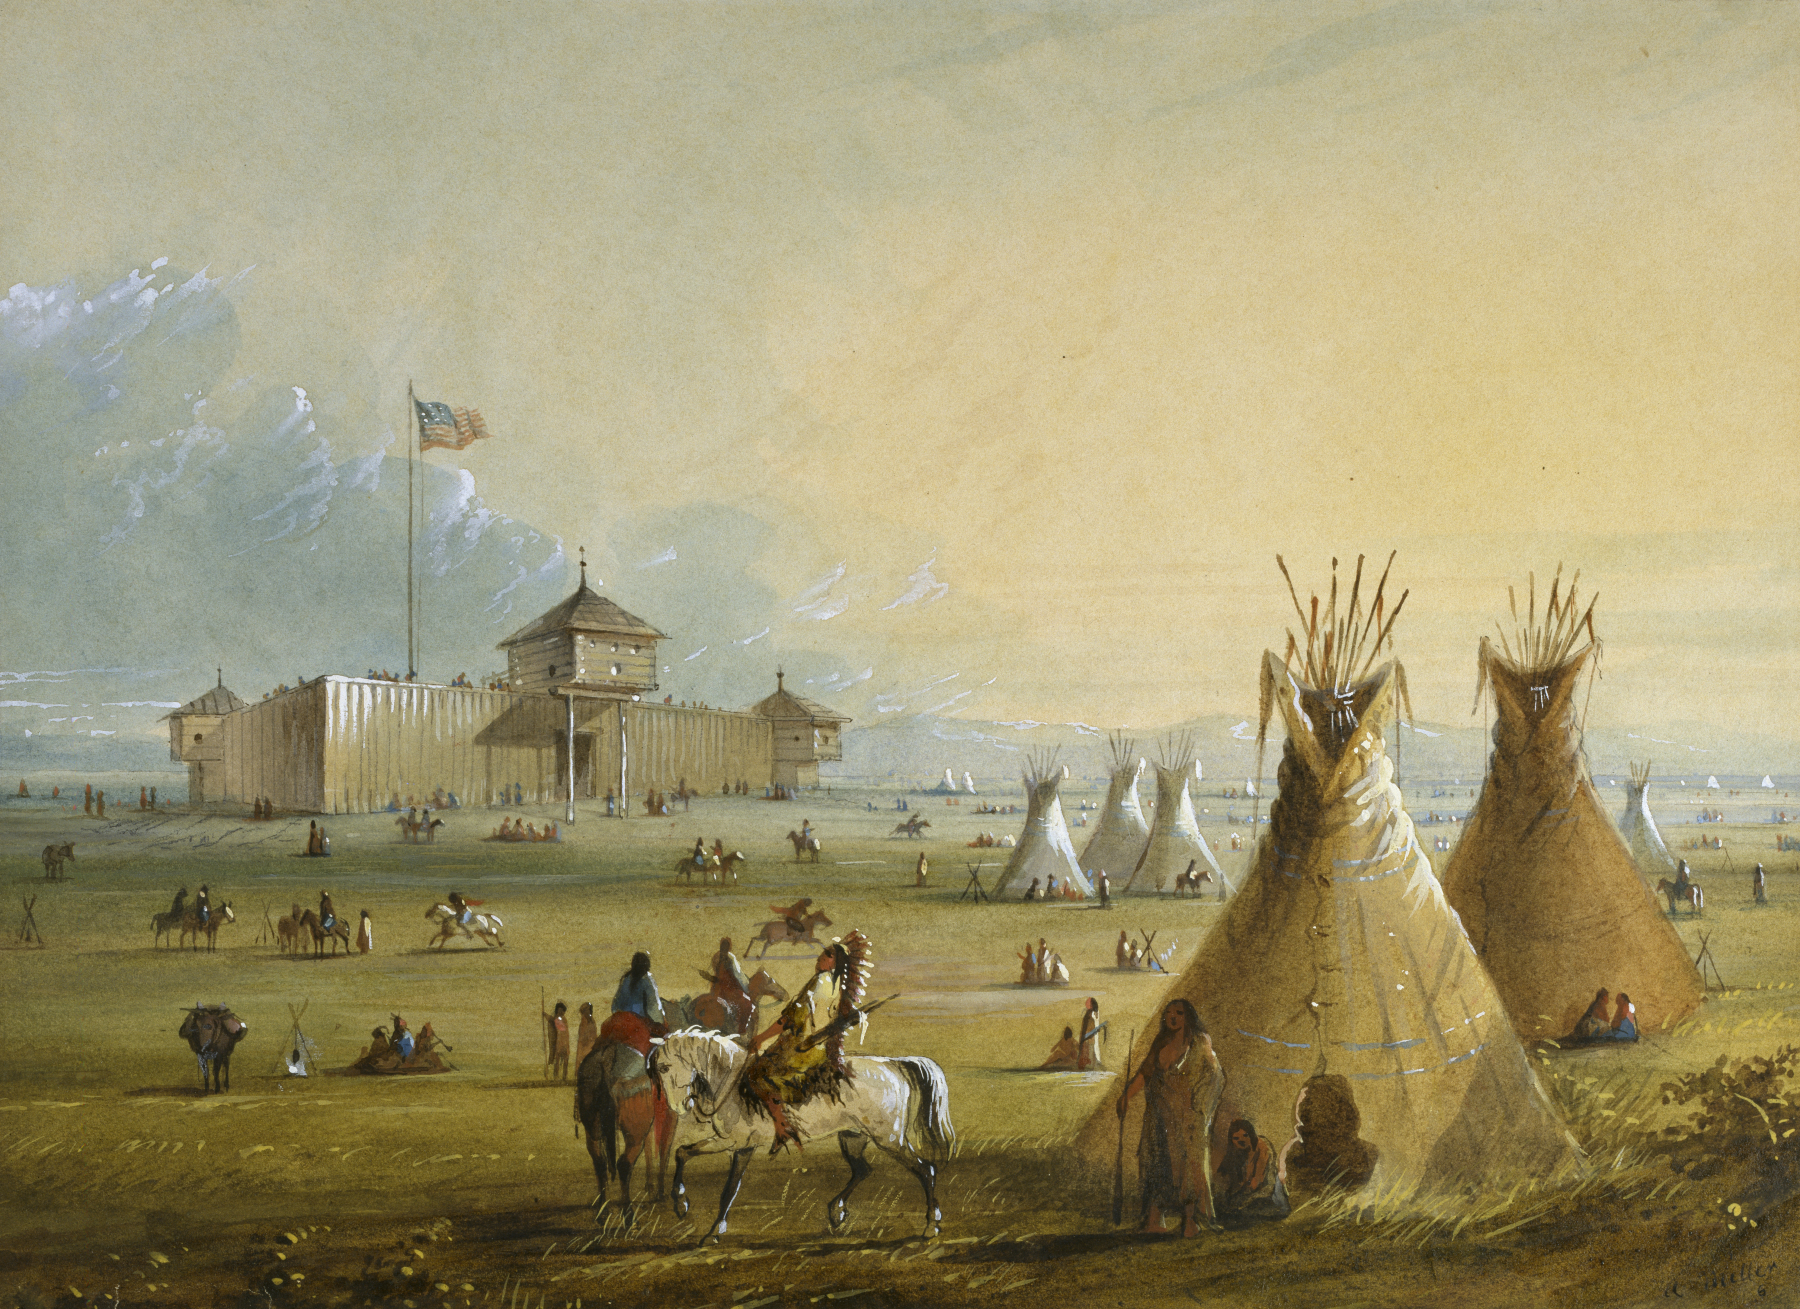 The first Fort Laramie as it looked before 1840 (painting from memory by Alfred Jacob Miller). Founded by William Sublette and Robert Campbell, Fort Laramie lay at the crossroads of an old north-south Indian trail and what became known as the Oregon Trail. Called Fort Laramie because of the nearby Laramie Mountains and the Laramie Fork of the North Platte River, the post was approximately 150 feet square, according to Miller, with bastions at the diagonal corners. Miller's paintings are the only known visual records of the fort, because the original fort was torn down in 1840 before any other artist had traveled the Oregon Trail; it was replaced with another structure, located perhaps on the same site in 1841. Alfred Jacob Miller (American, 1810-1874). 'Fort Laramie,' 1858-1860. watercolor on paper. Walters Art Museum (37.1940.49): Commissioned by William T. Walters, 1858-1860.